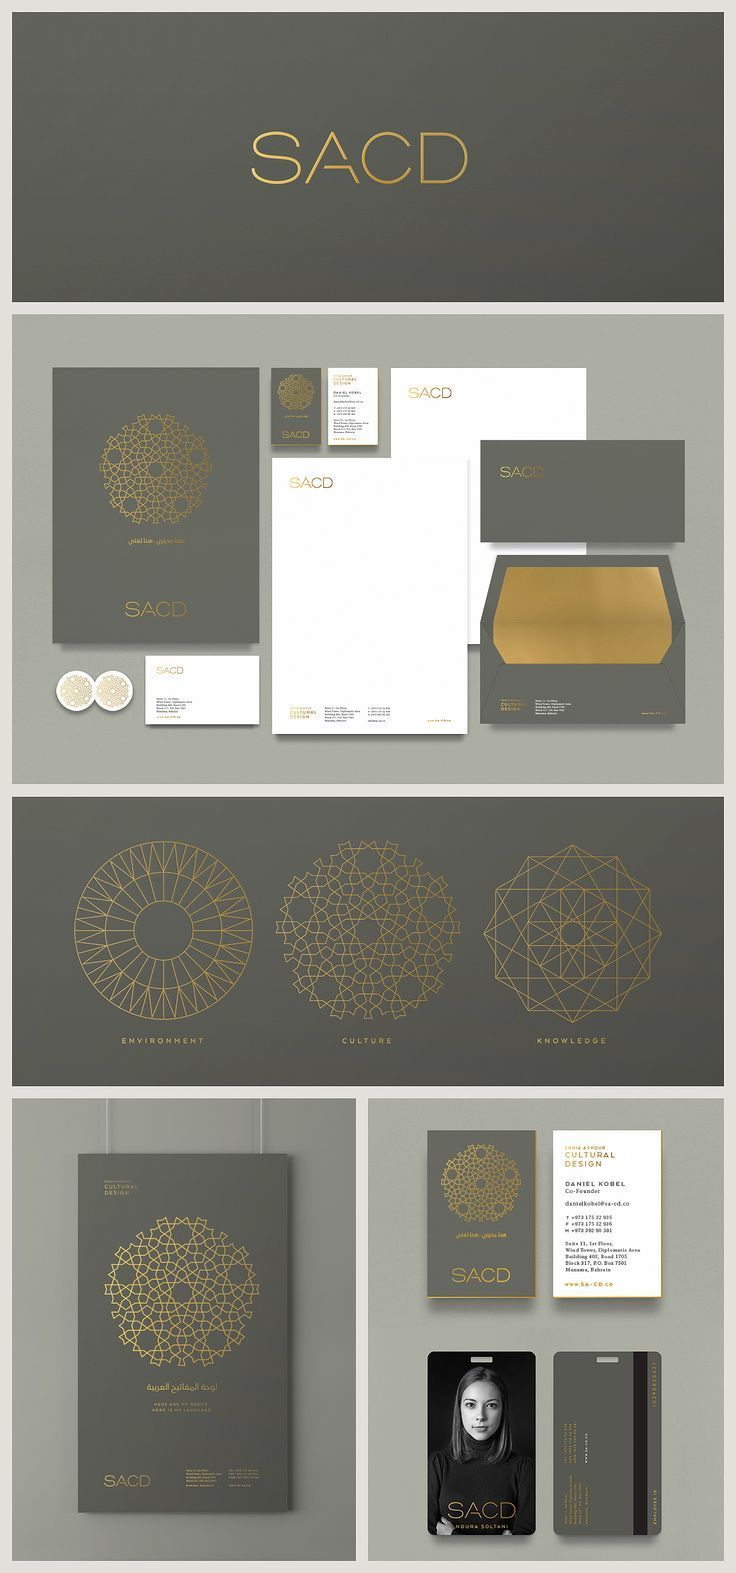 Branding for SACD; Sonia Ashour Cultural Design by Eight Hour Day